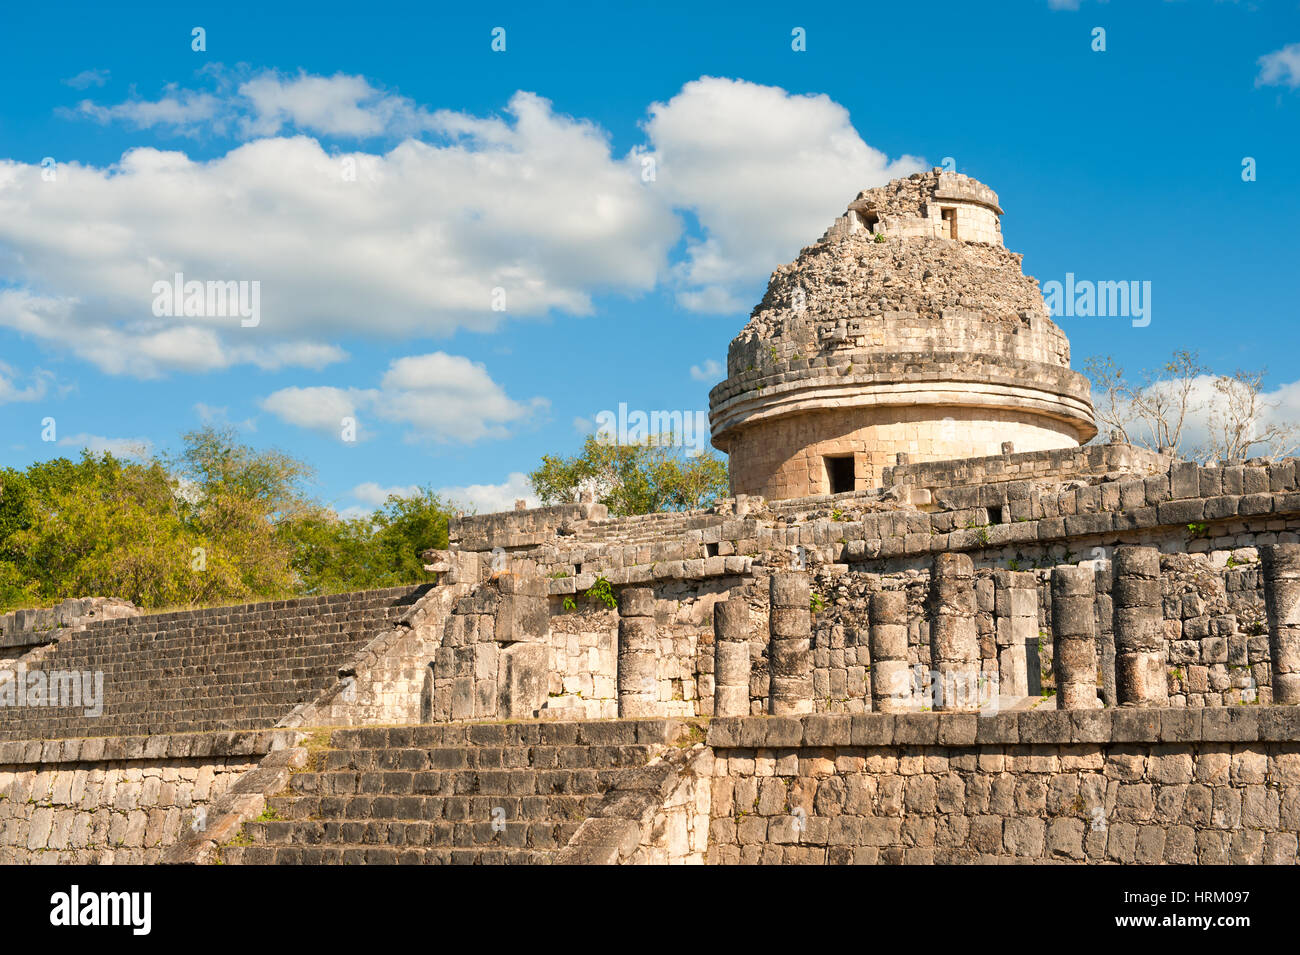 The observatory at Chichen Itza, Mexico, Yucatan - Stock Image